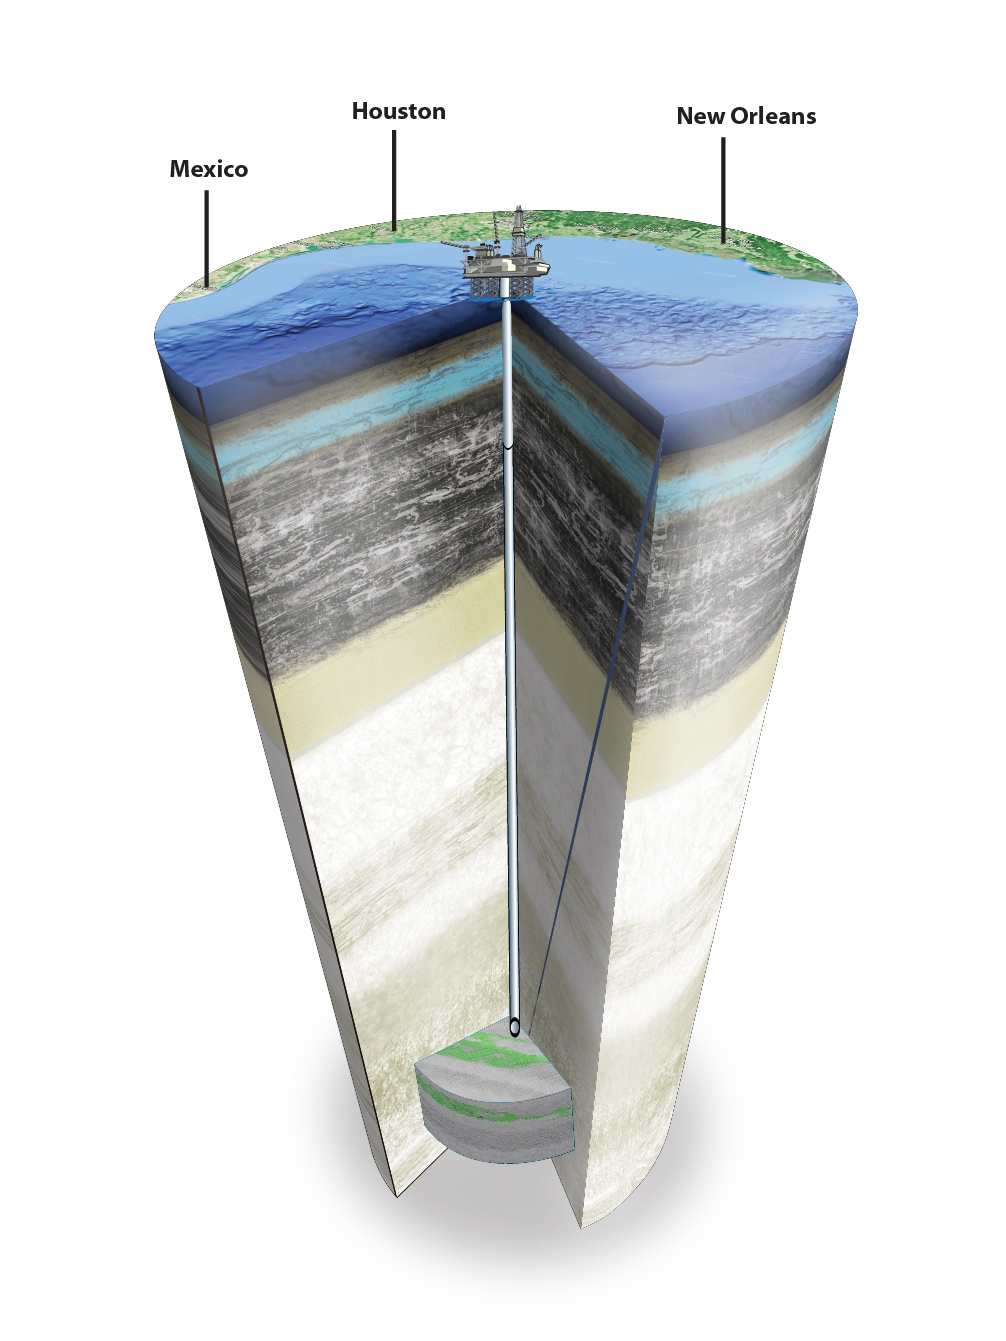 Illustration of geologic offshore carbon sequestration